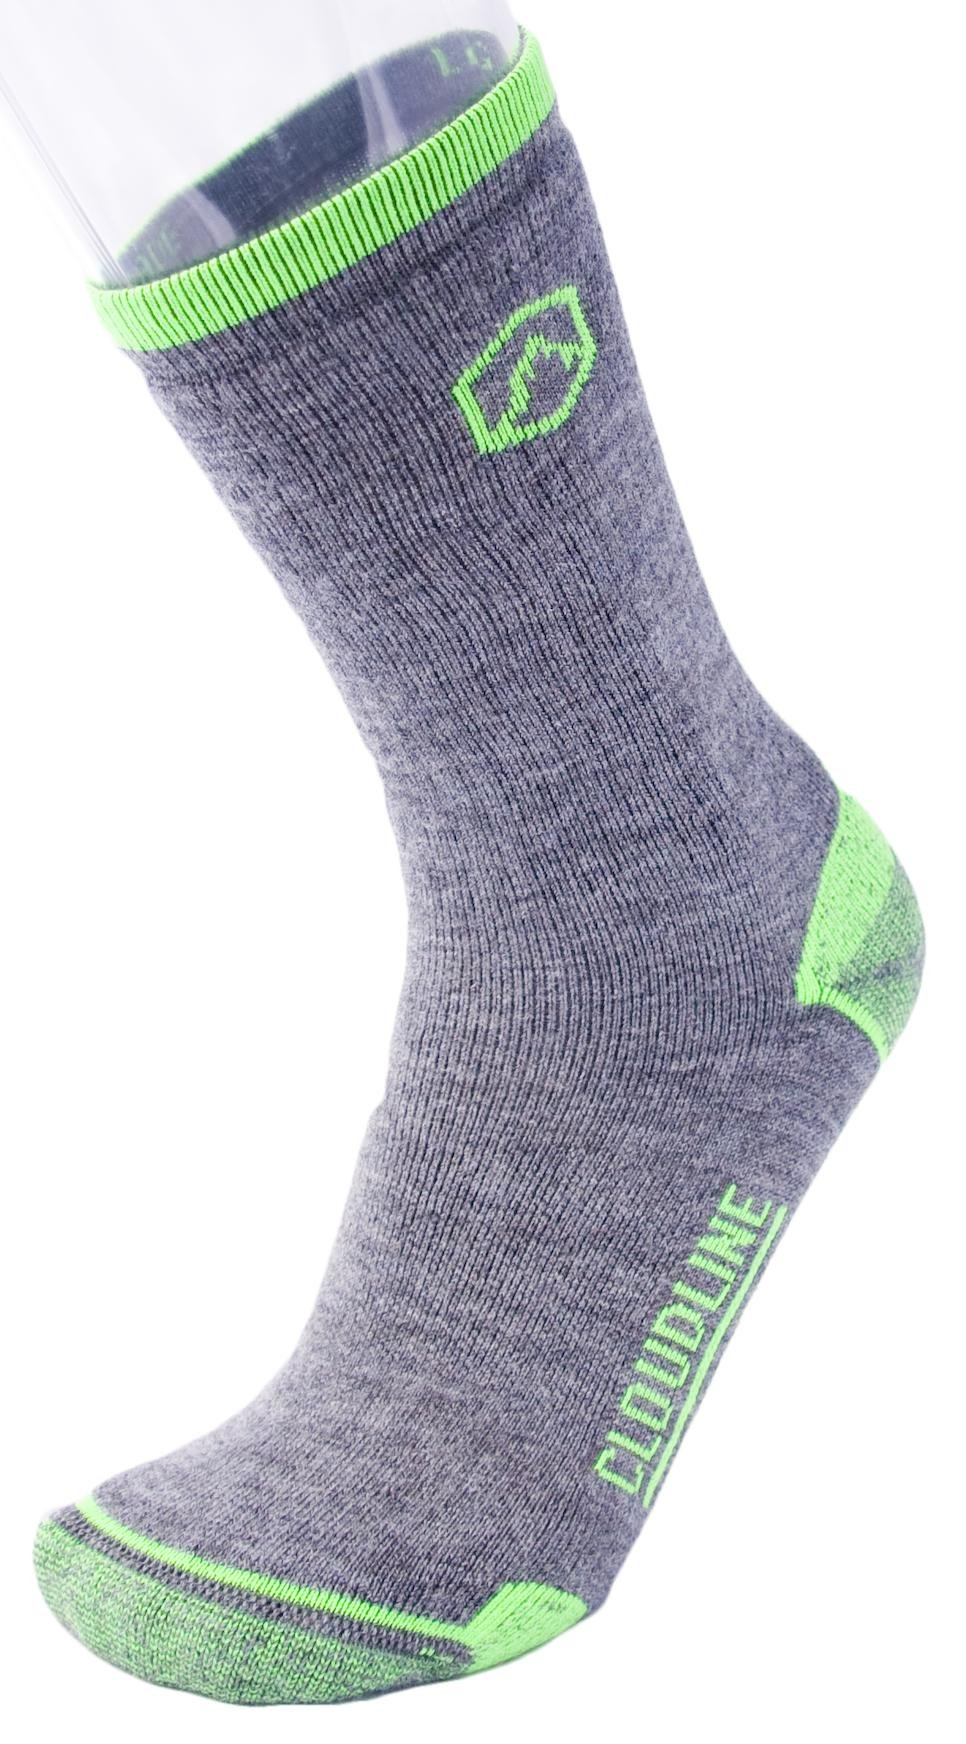 ac2fd8c5f1f0b CloudLine Merino Wool Crew Hiking & Trekking Socks – Medium Cushion – for  Men & Women